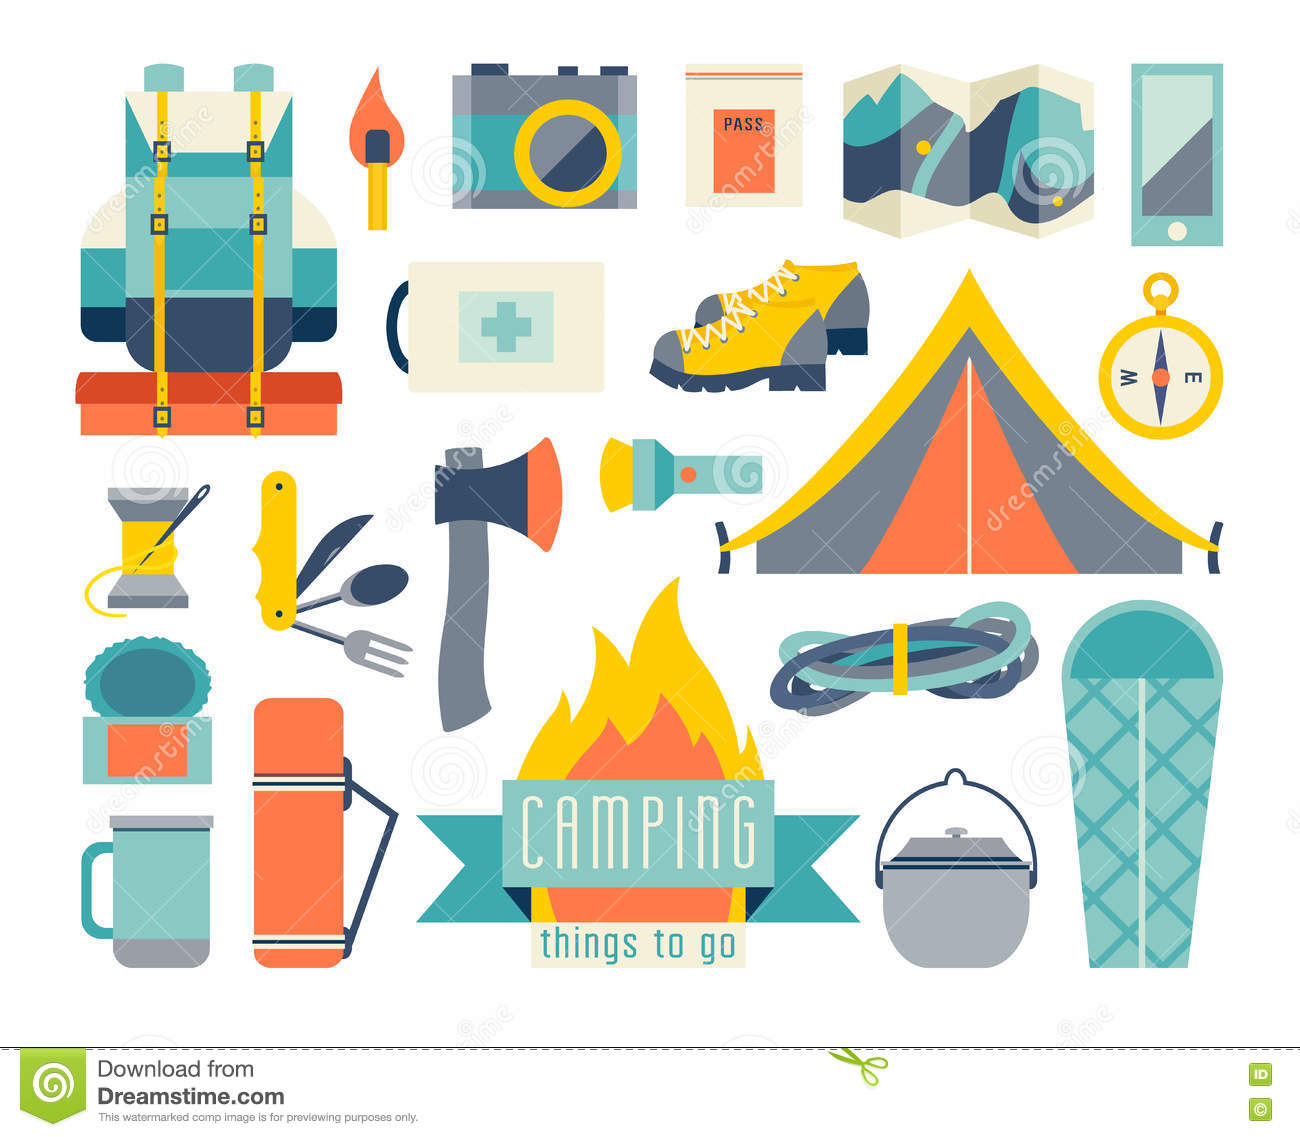 Camping Icon Set Adventure Hiking Kit And EquipmentTent Camp